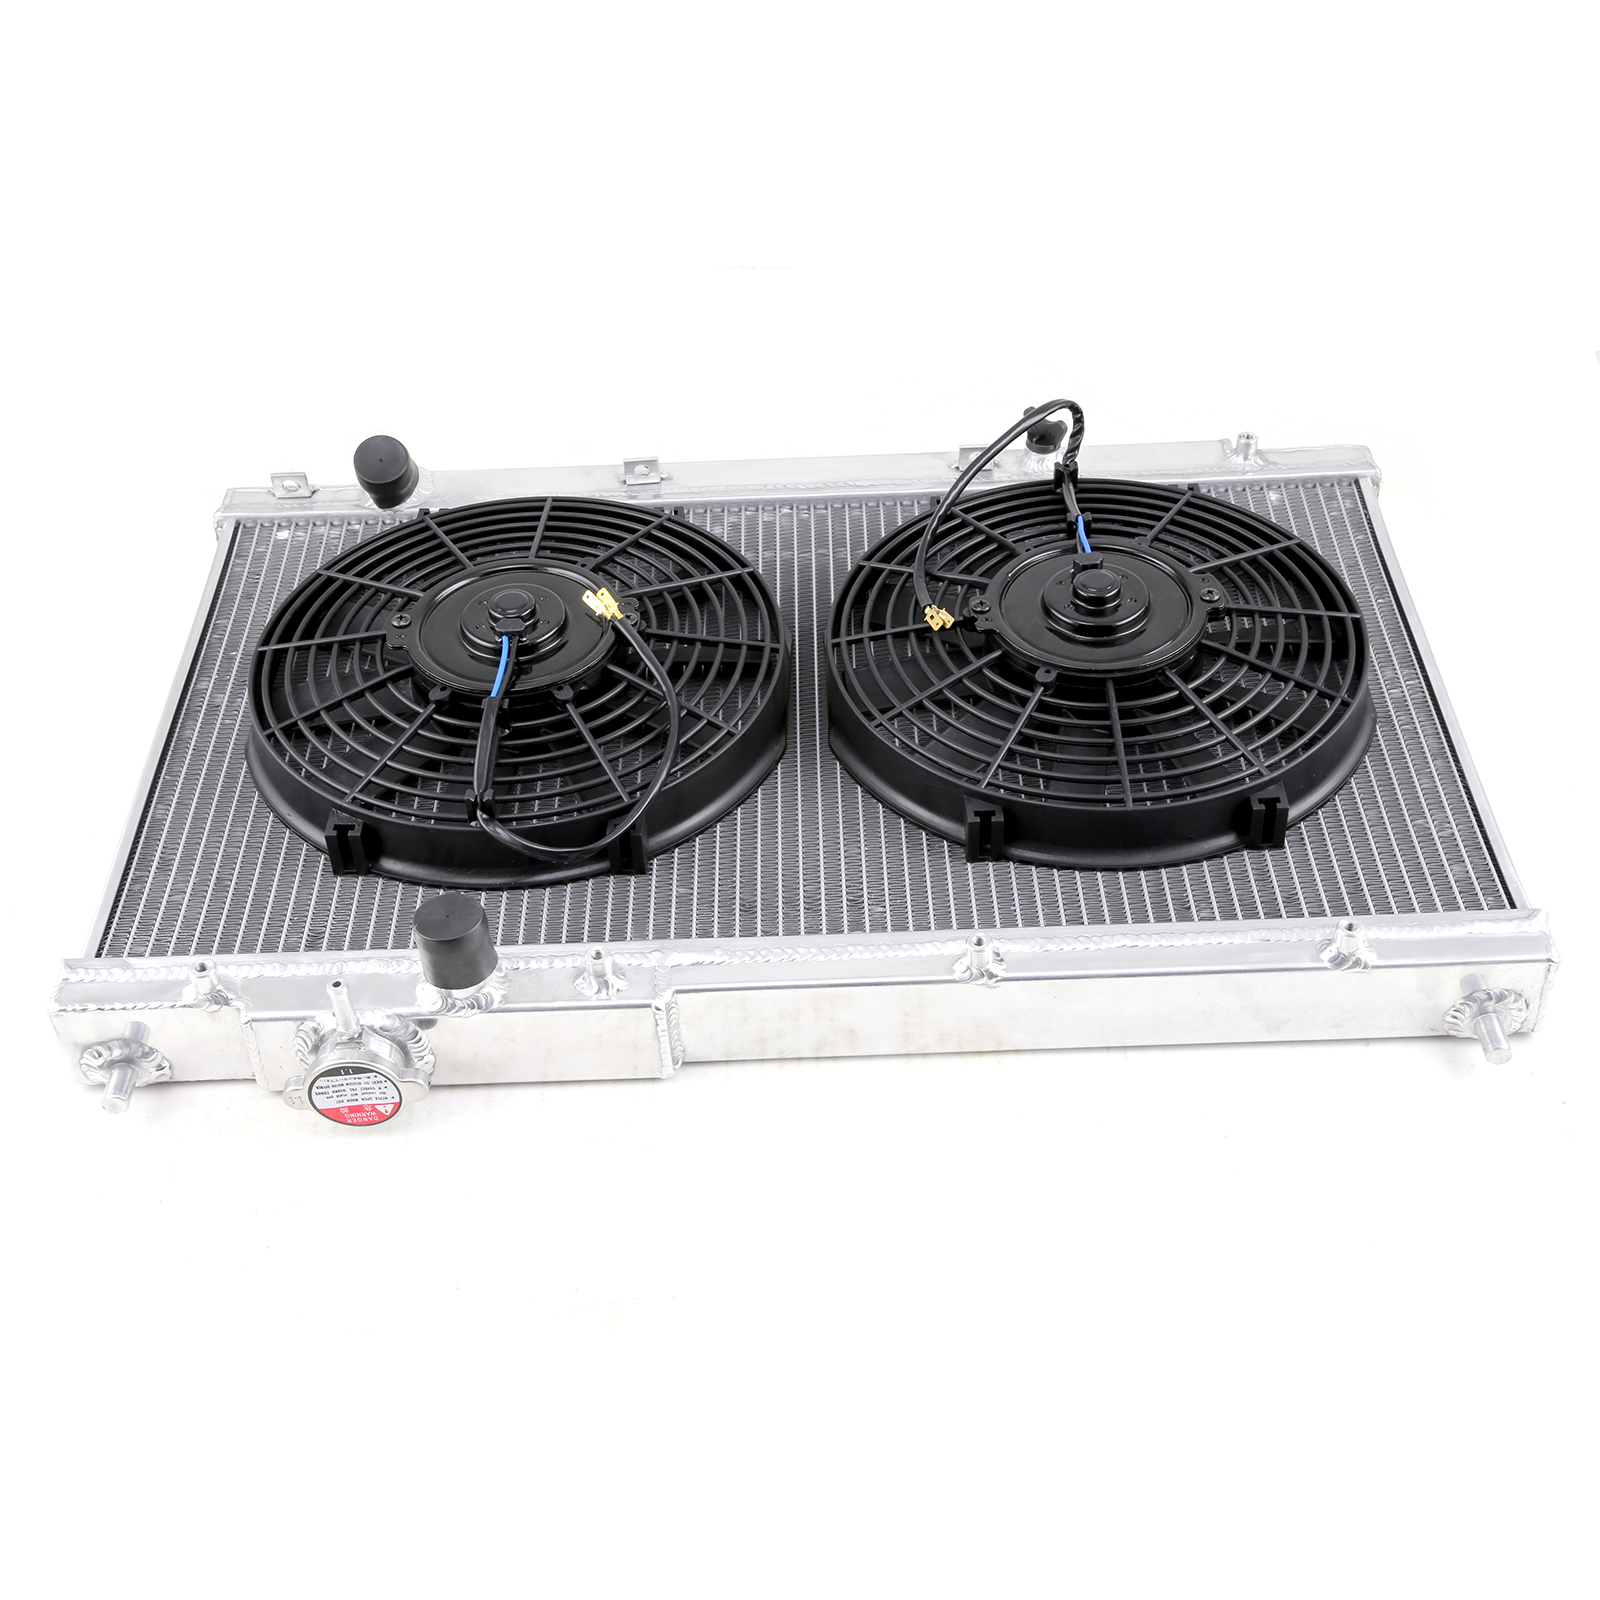 01-05 Civic Ex/Lx Em2 Es Mt 2-Row Radiator + 2 X 10 Electric Fan